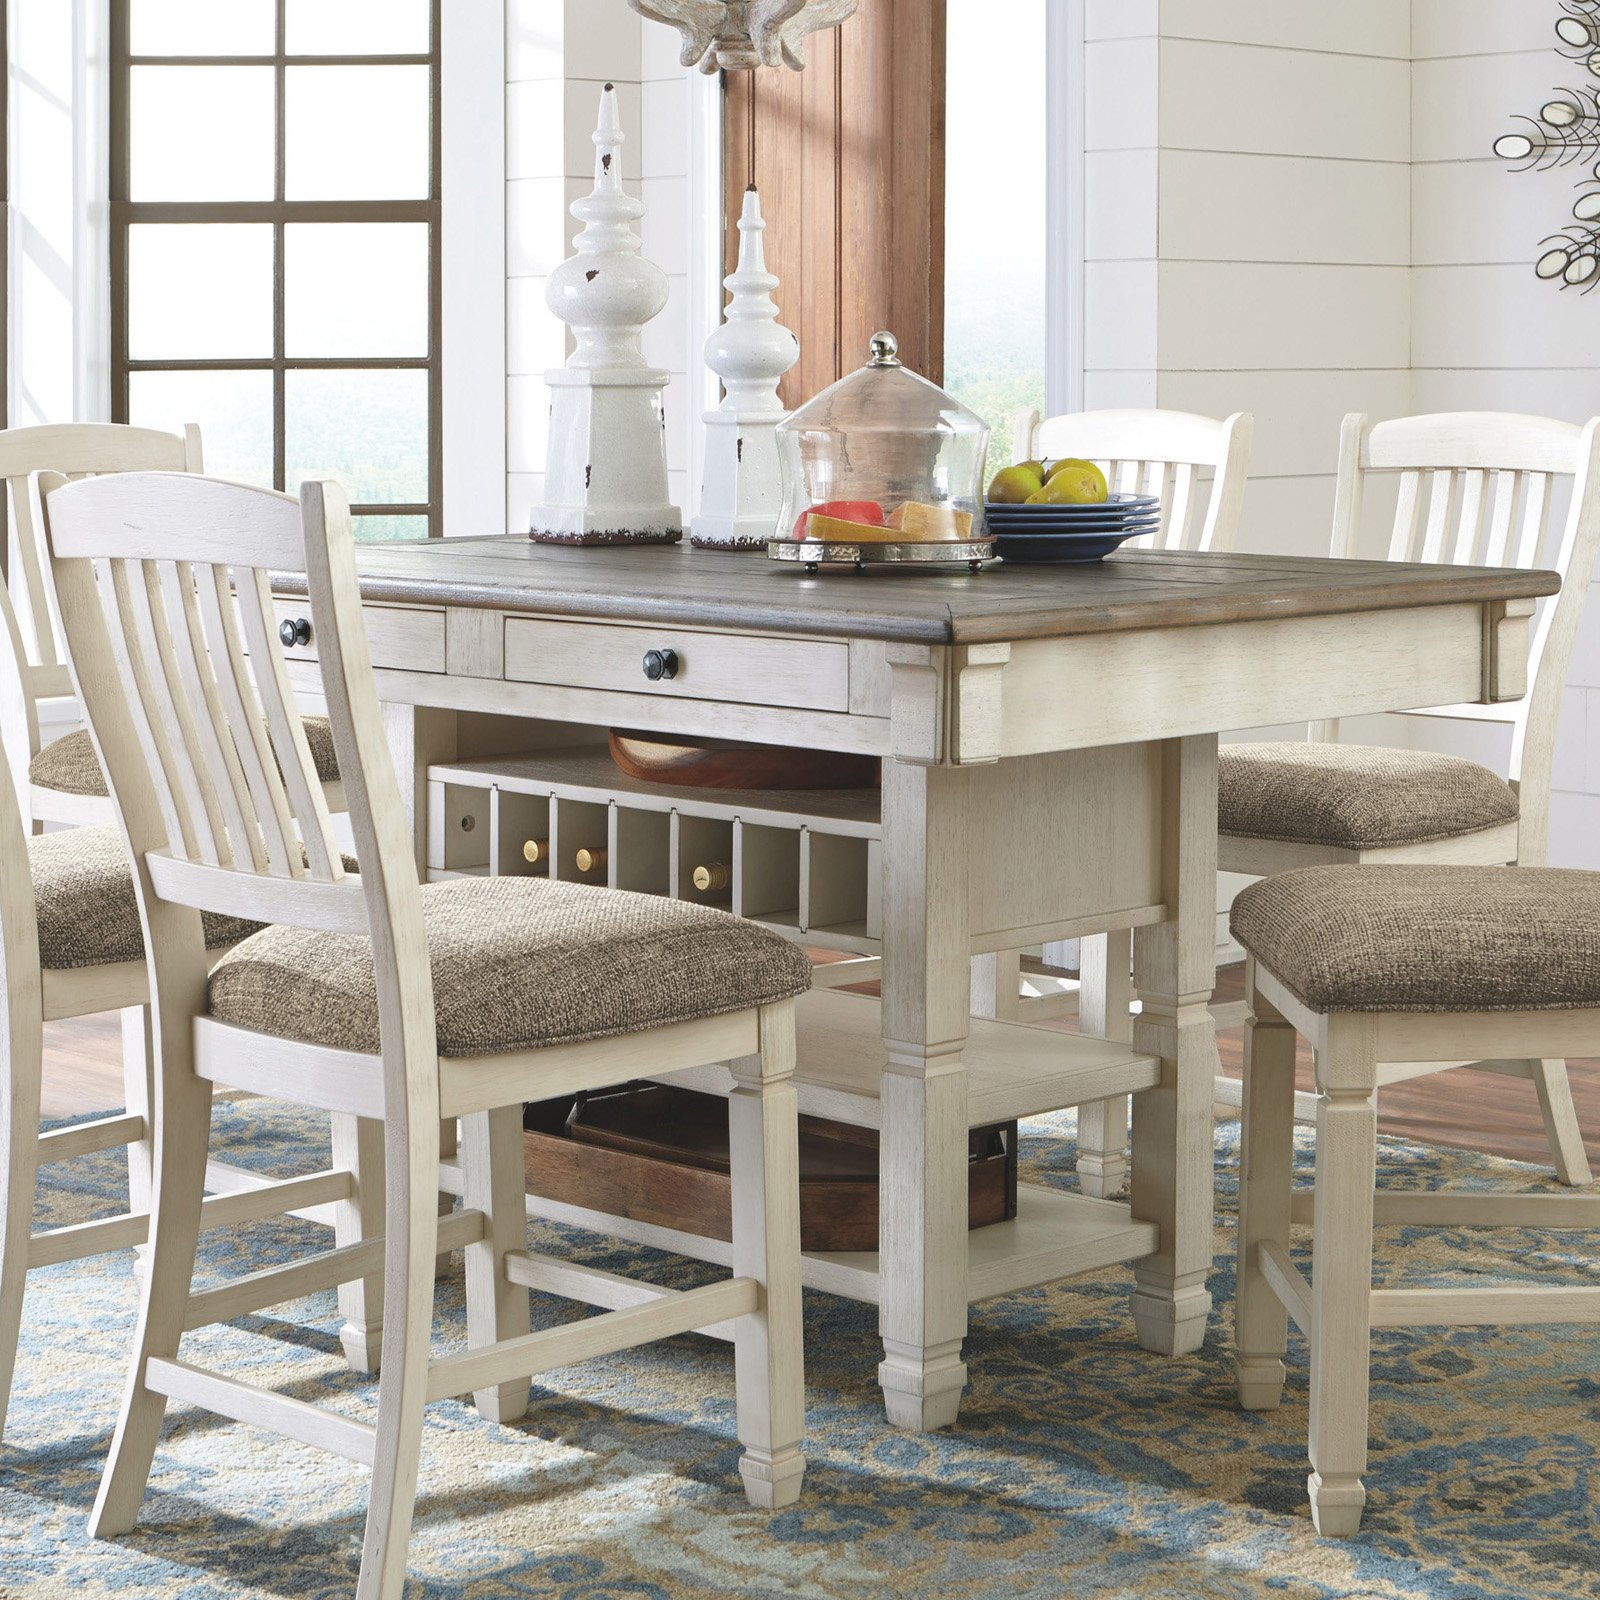 Genial Signature Design By Ashley Bolanburg Rectangular Counter Height Dining Table